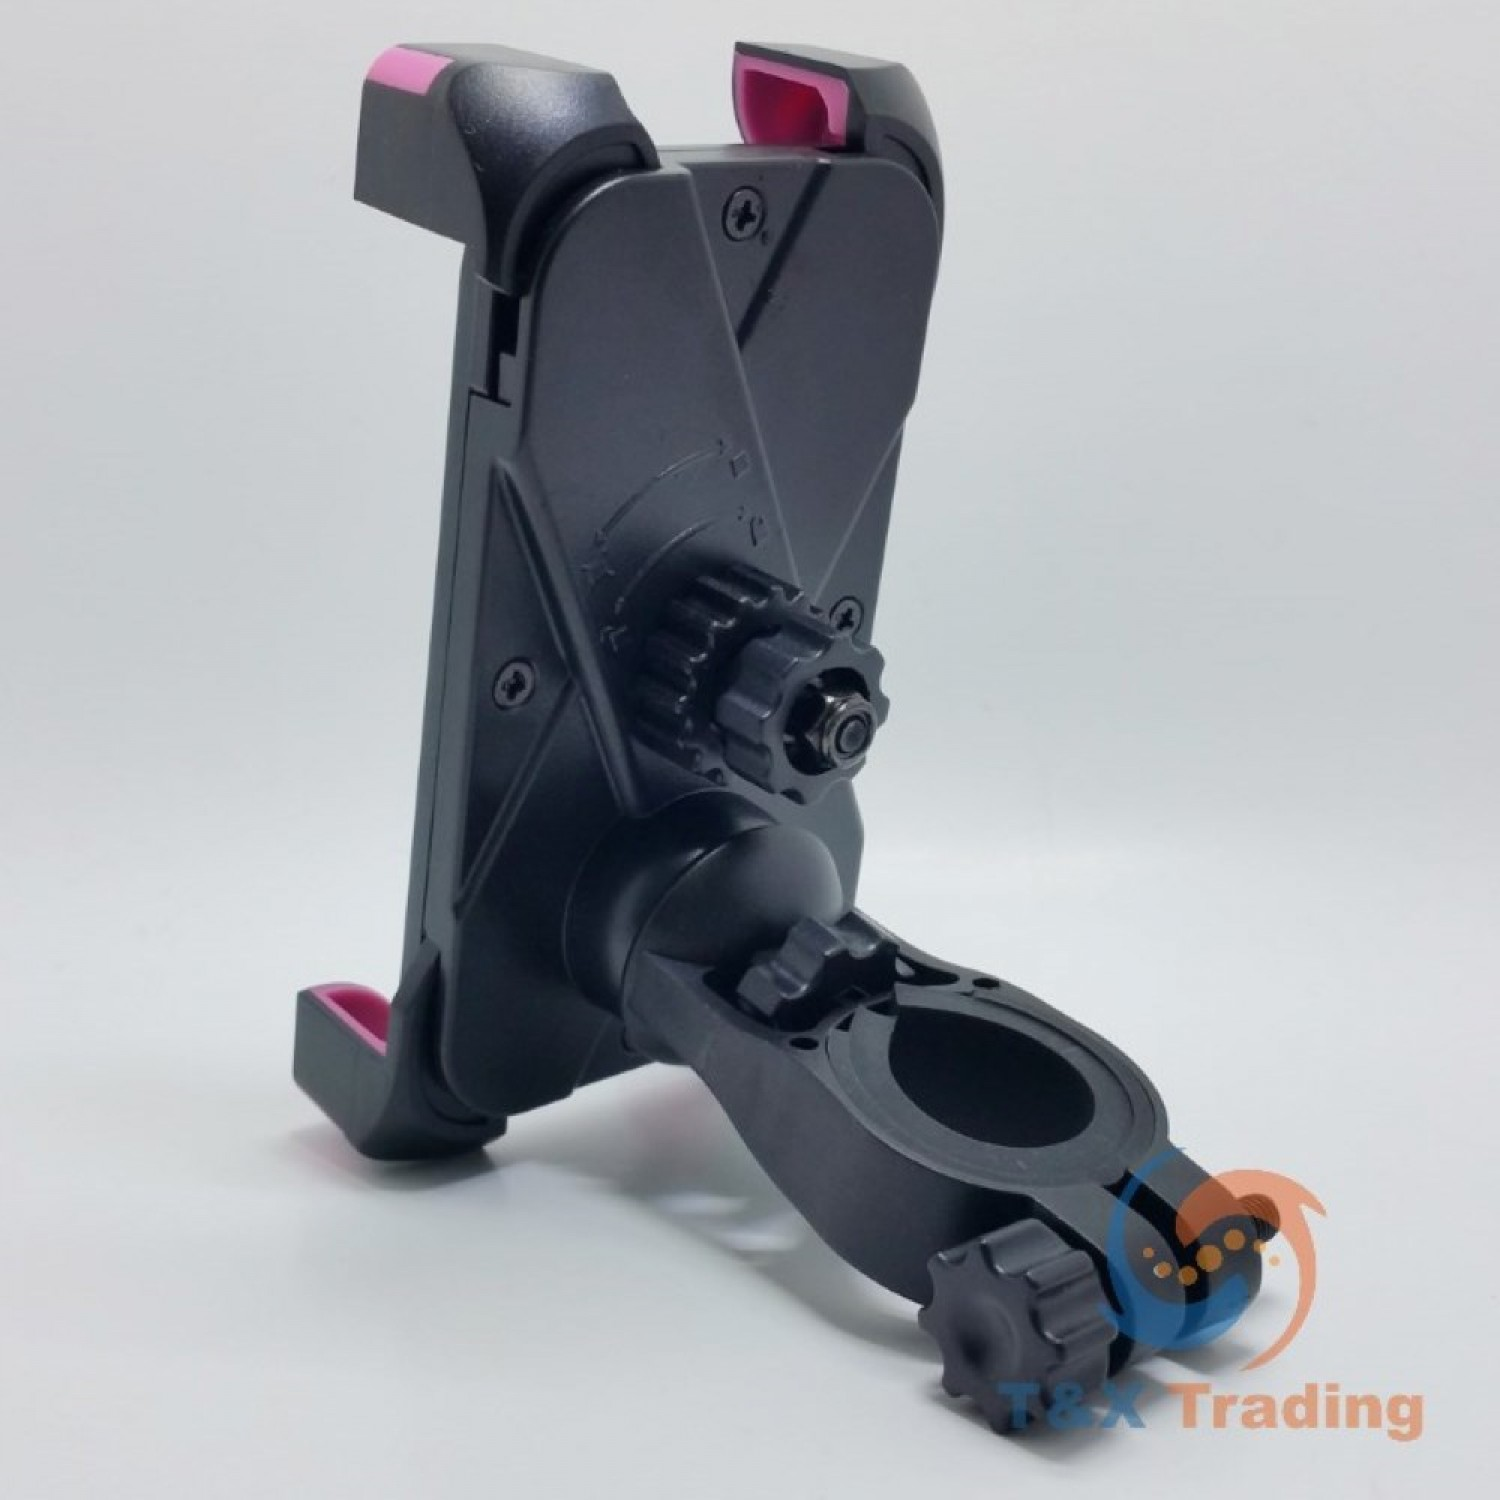 Bike Cell Phone Mount Holder